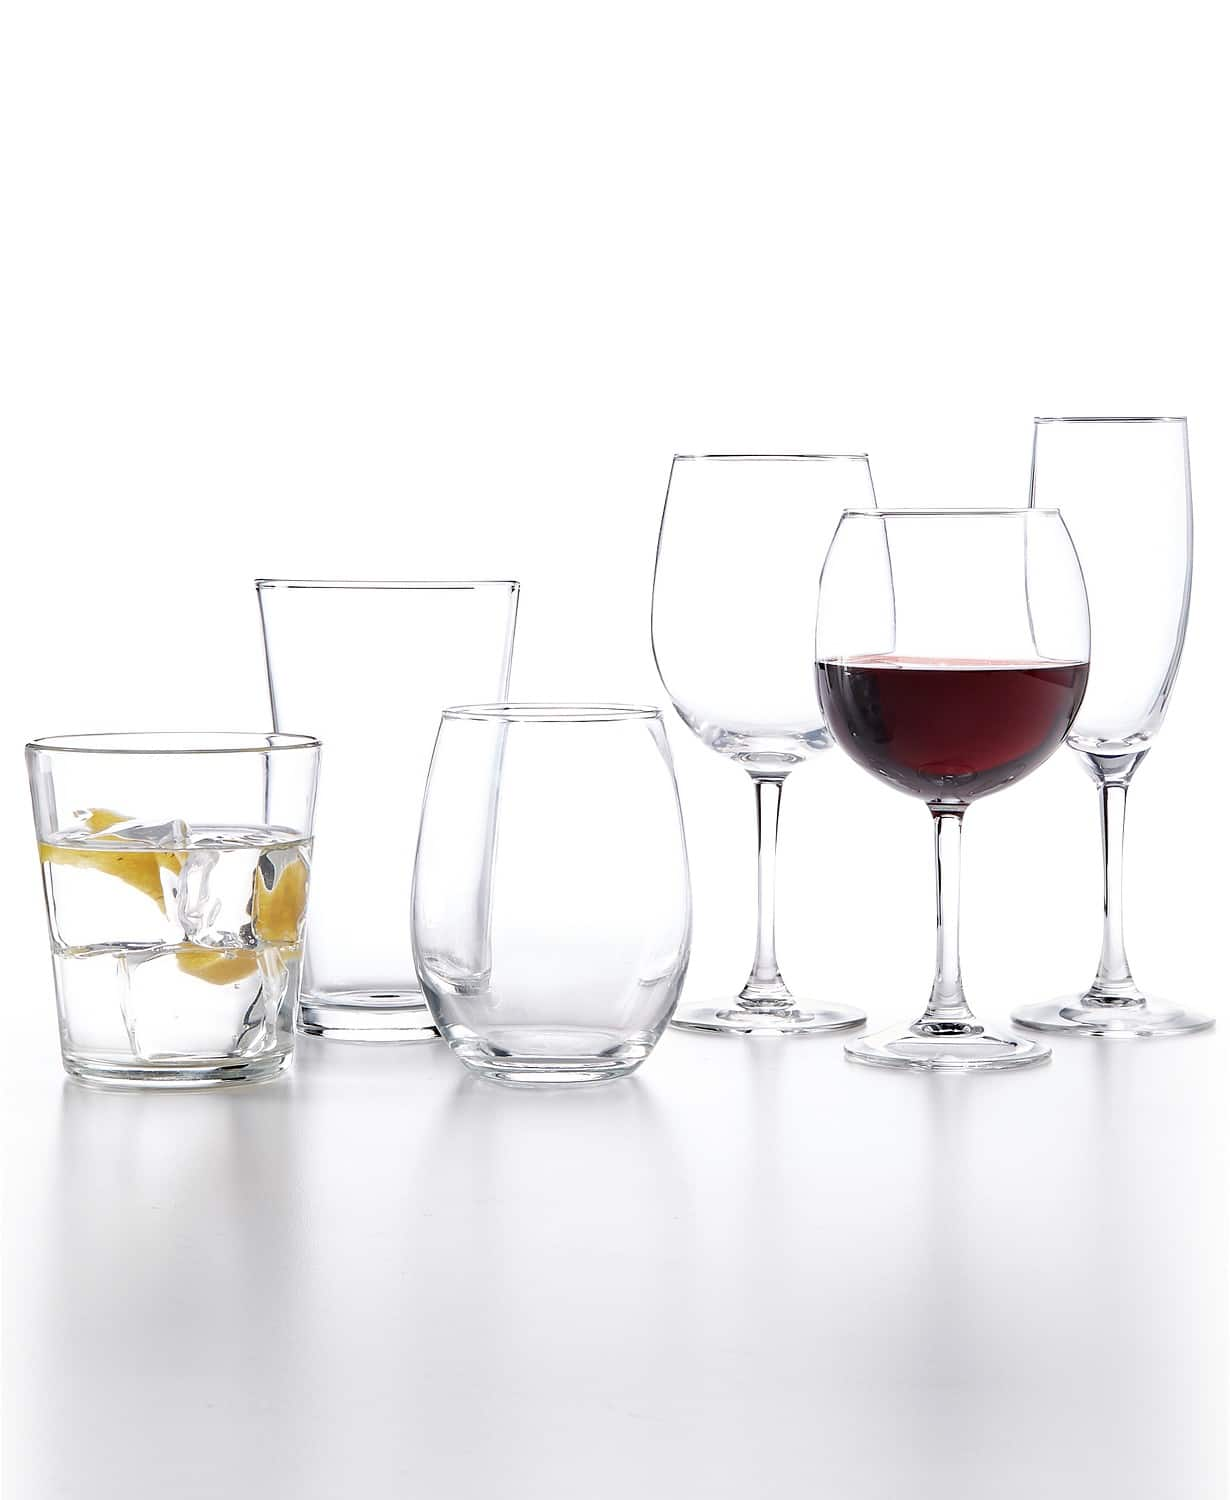 12-Piece Martha Stewart Essentials Glassware Sets (Tumblers, Wine Glasses, Flutes) for $9.99 at Macy's w/ in-store pick up